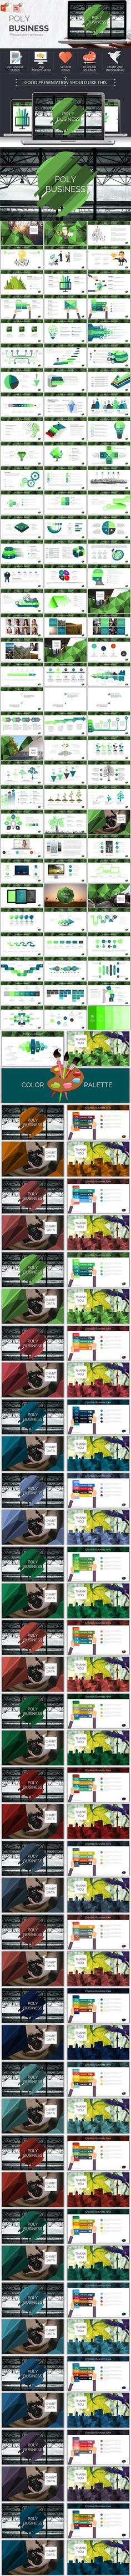 Masterbiz complete pitch deck powerpoint decking business lowpoly business powerpoint template design download httpgraphicriver toneelgroepblik Images